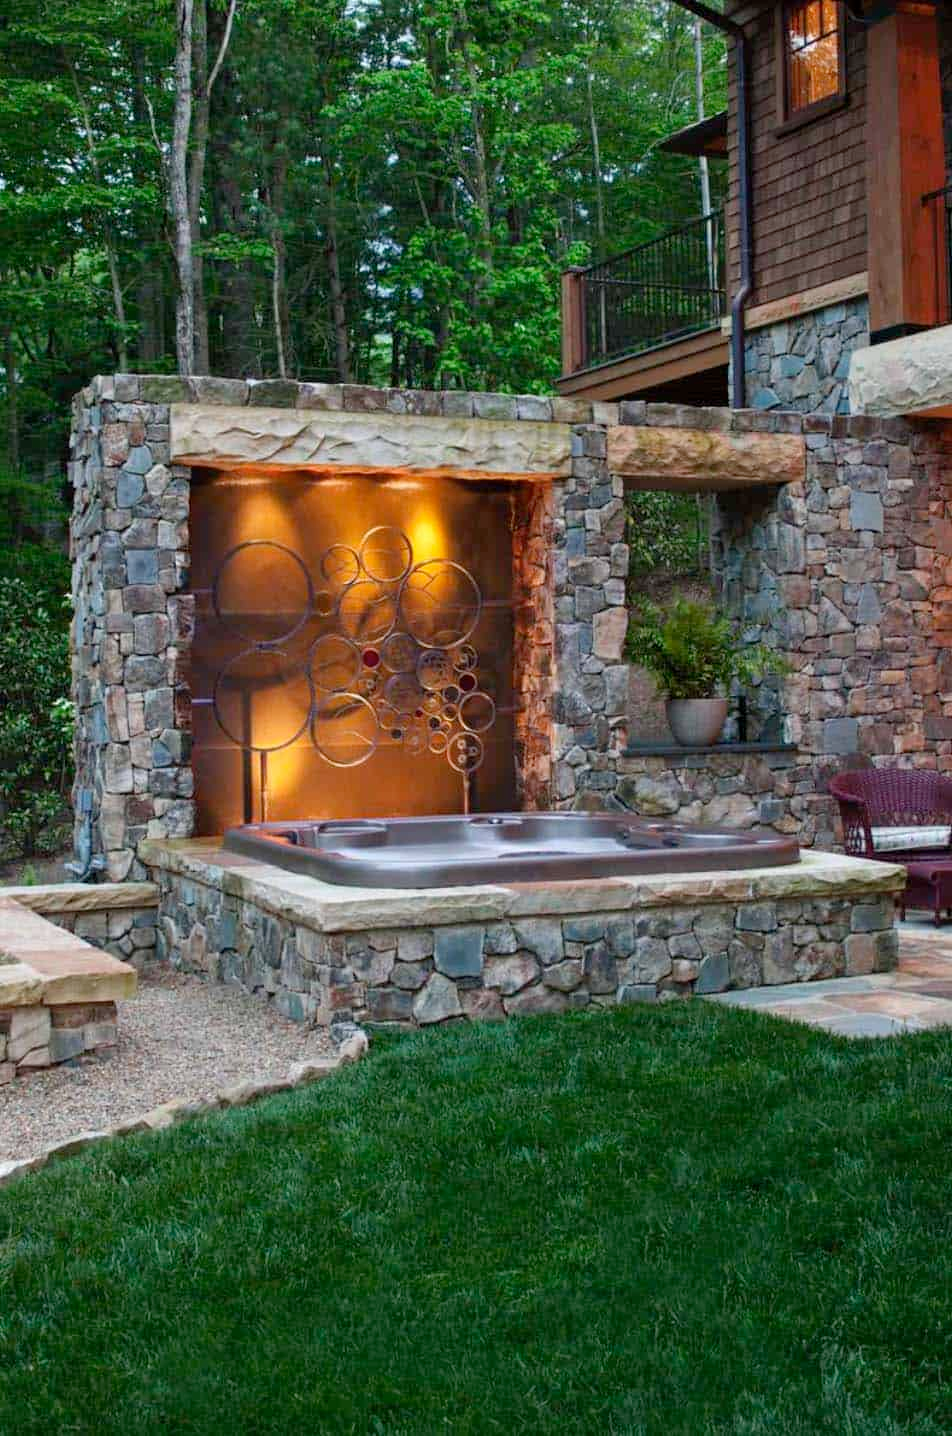 40+ Outstanding Hot Tub Ideas To Create A Backyard Oasis ...